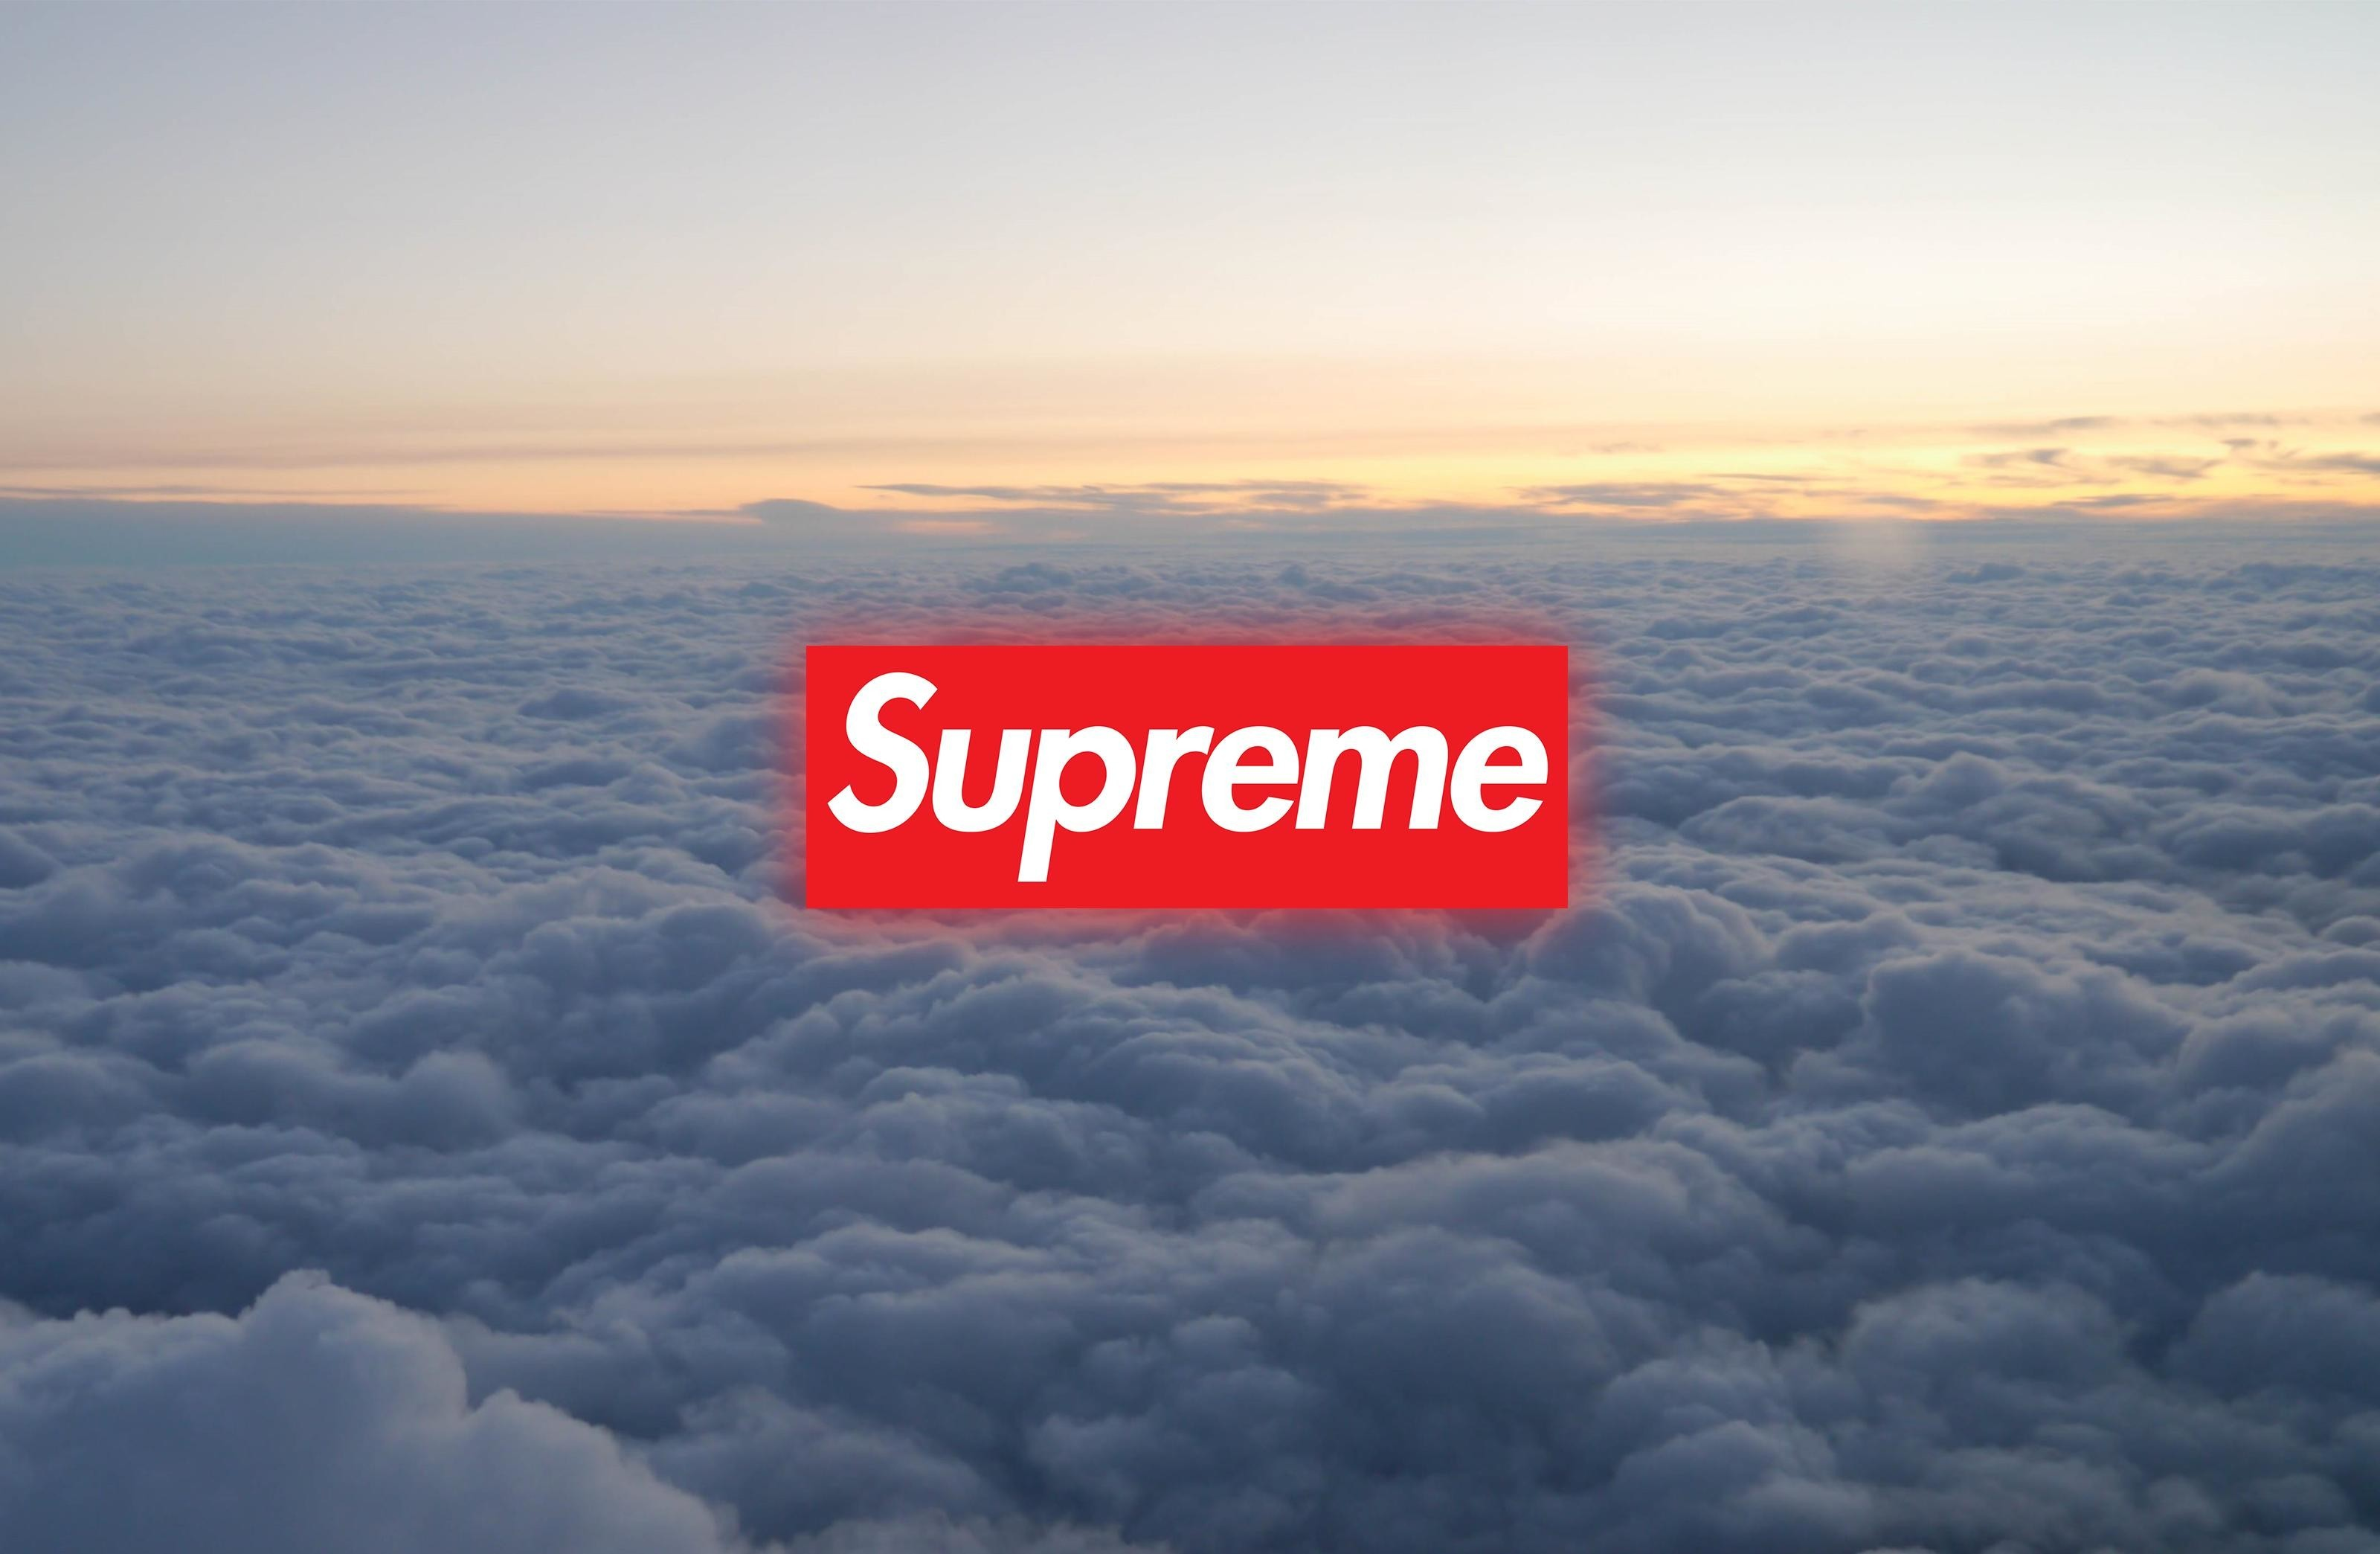 3200x2089  Supreme Wallpapers 4 - 3200 X 2089